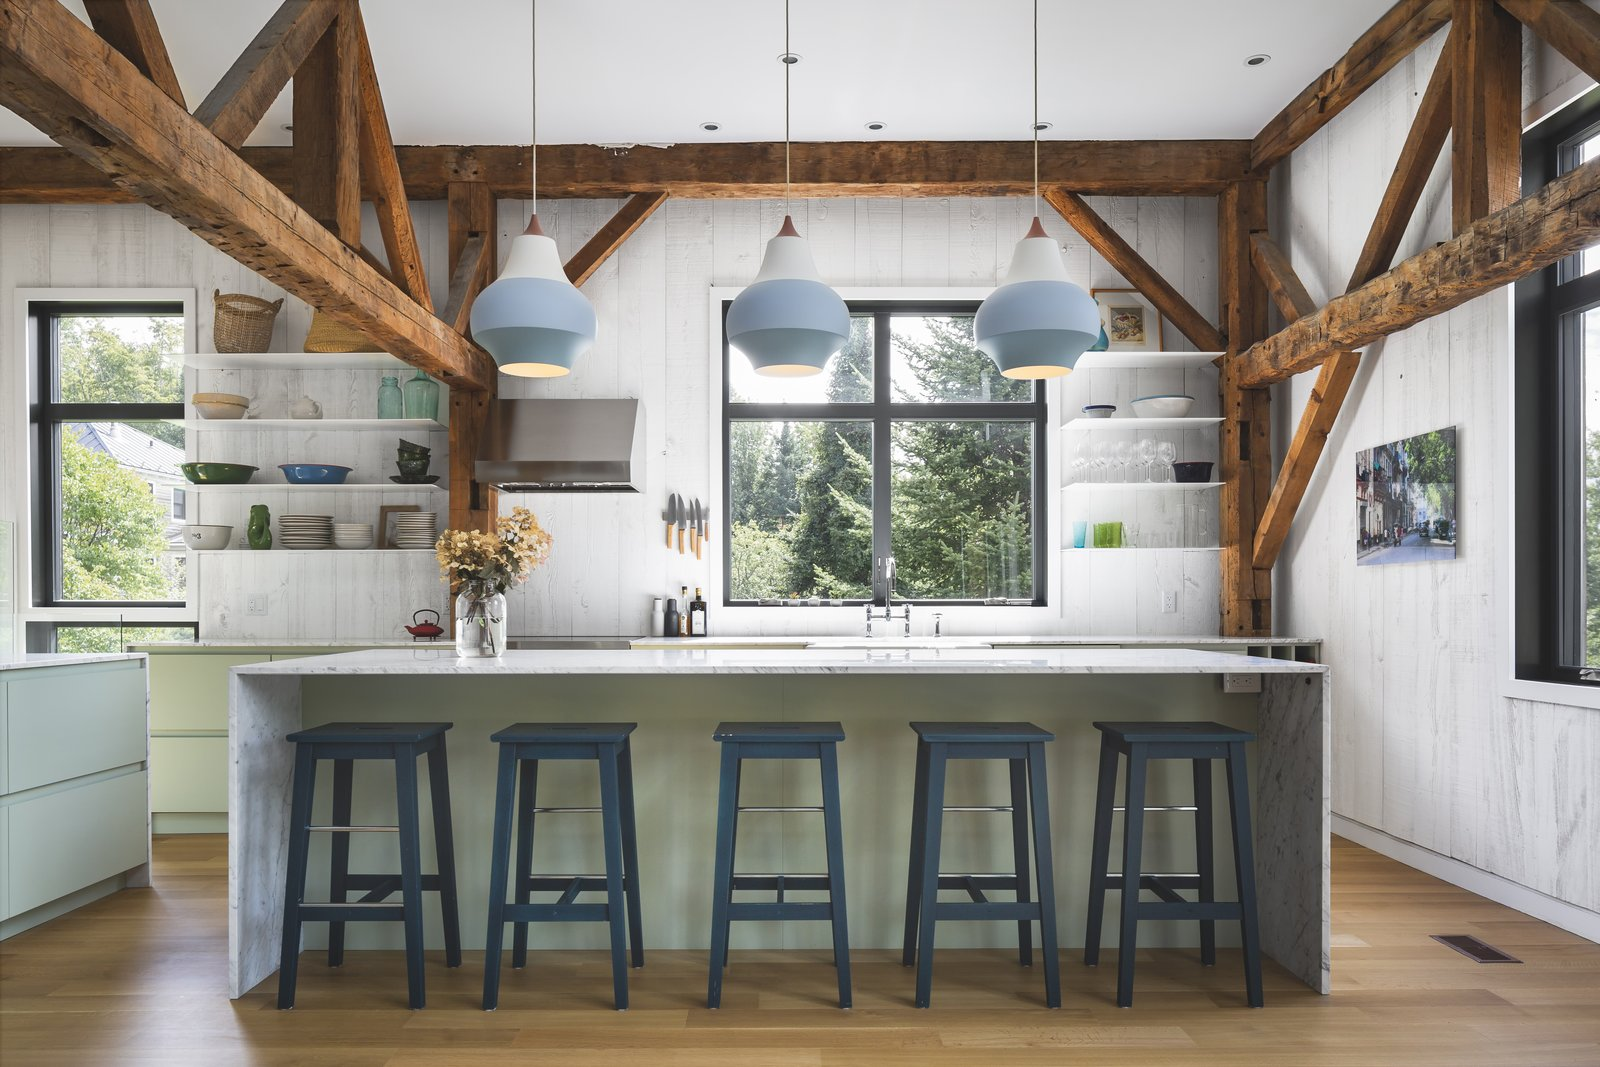 Kitchen of The Barn by La Firme